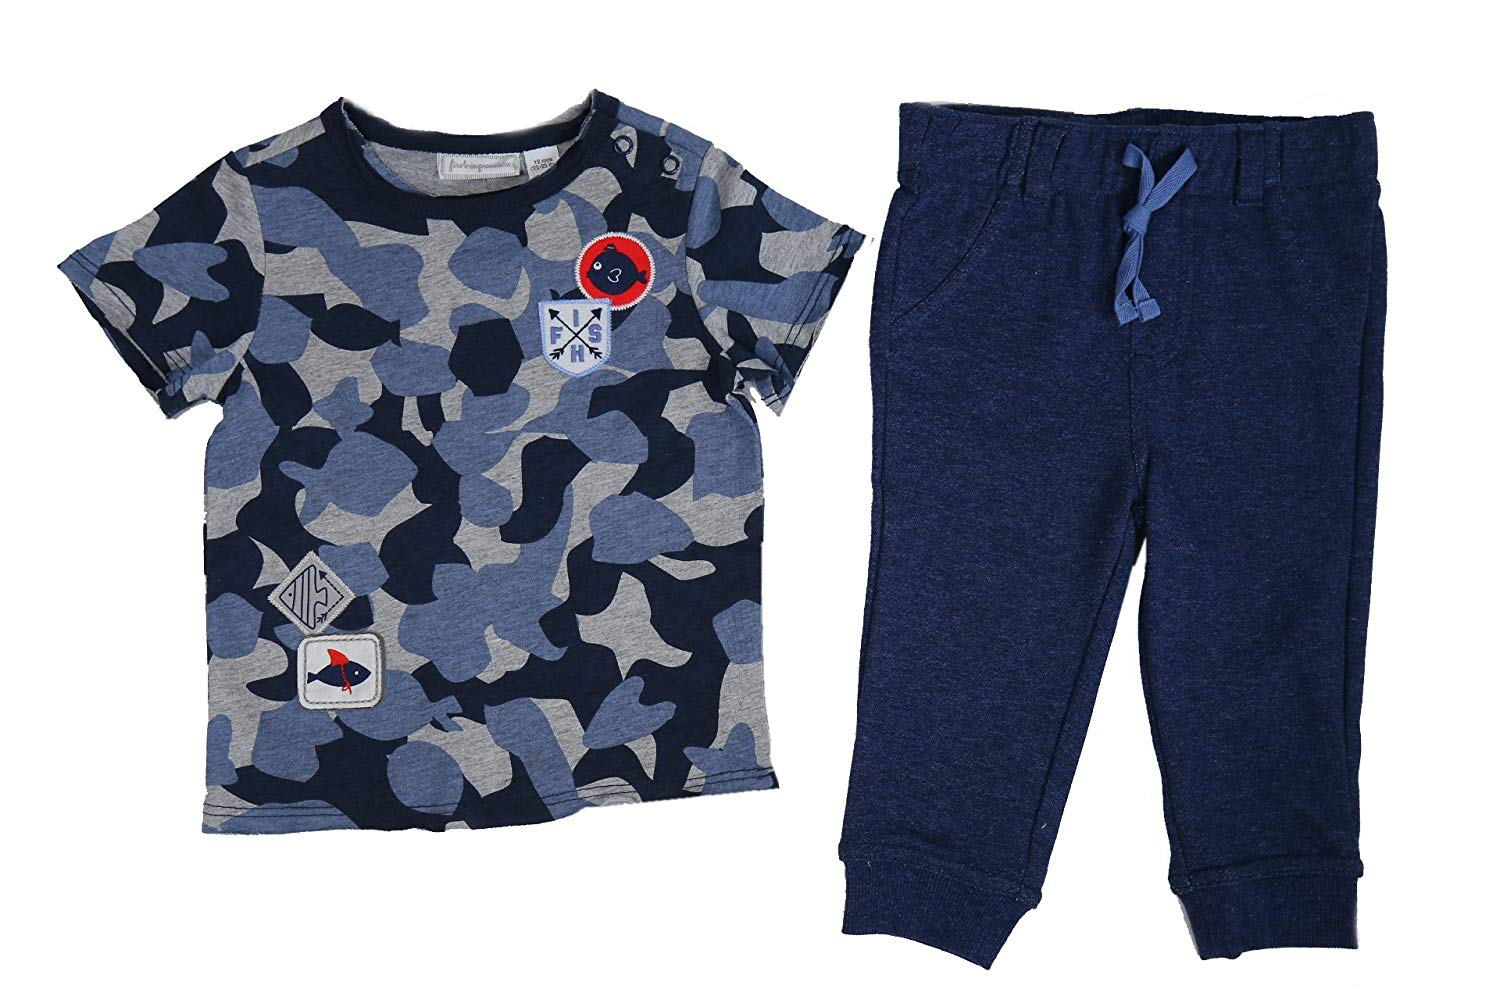 ee3ea2ee8 Get Quotations · First Impressions Baby Boys 2-Pc. Fish-Camo-Print T-Shirt